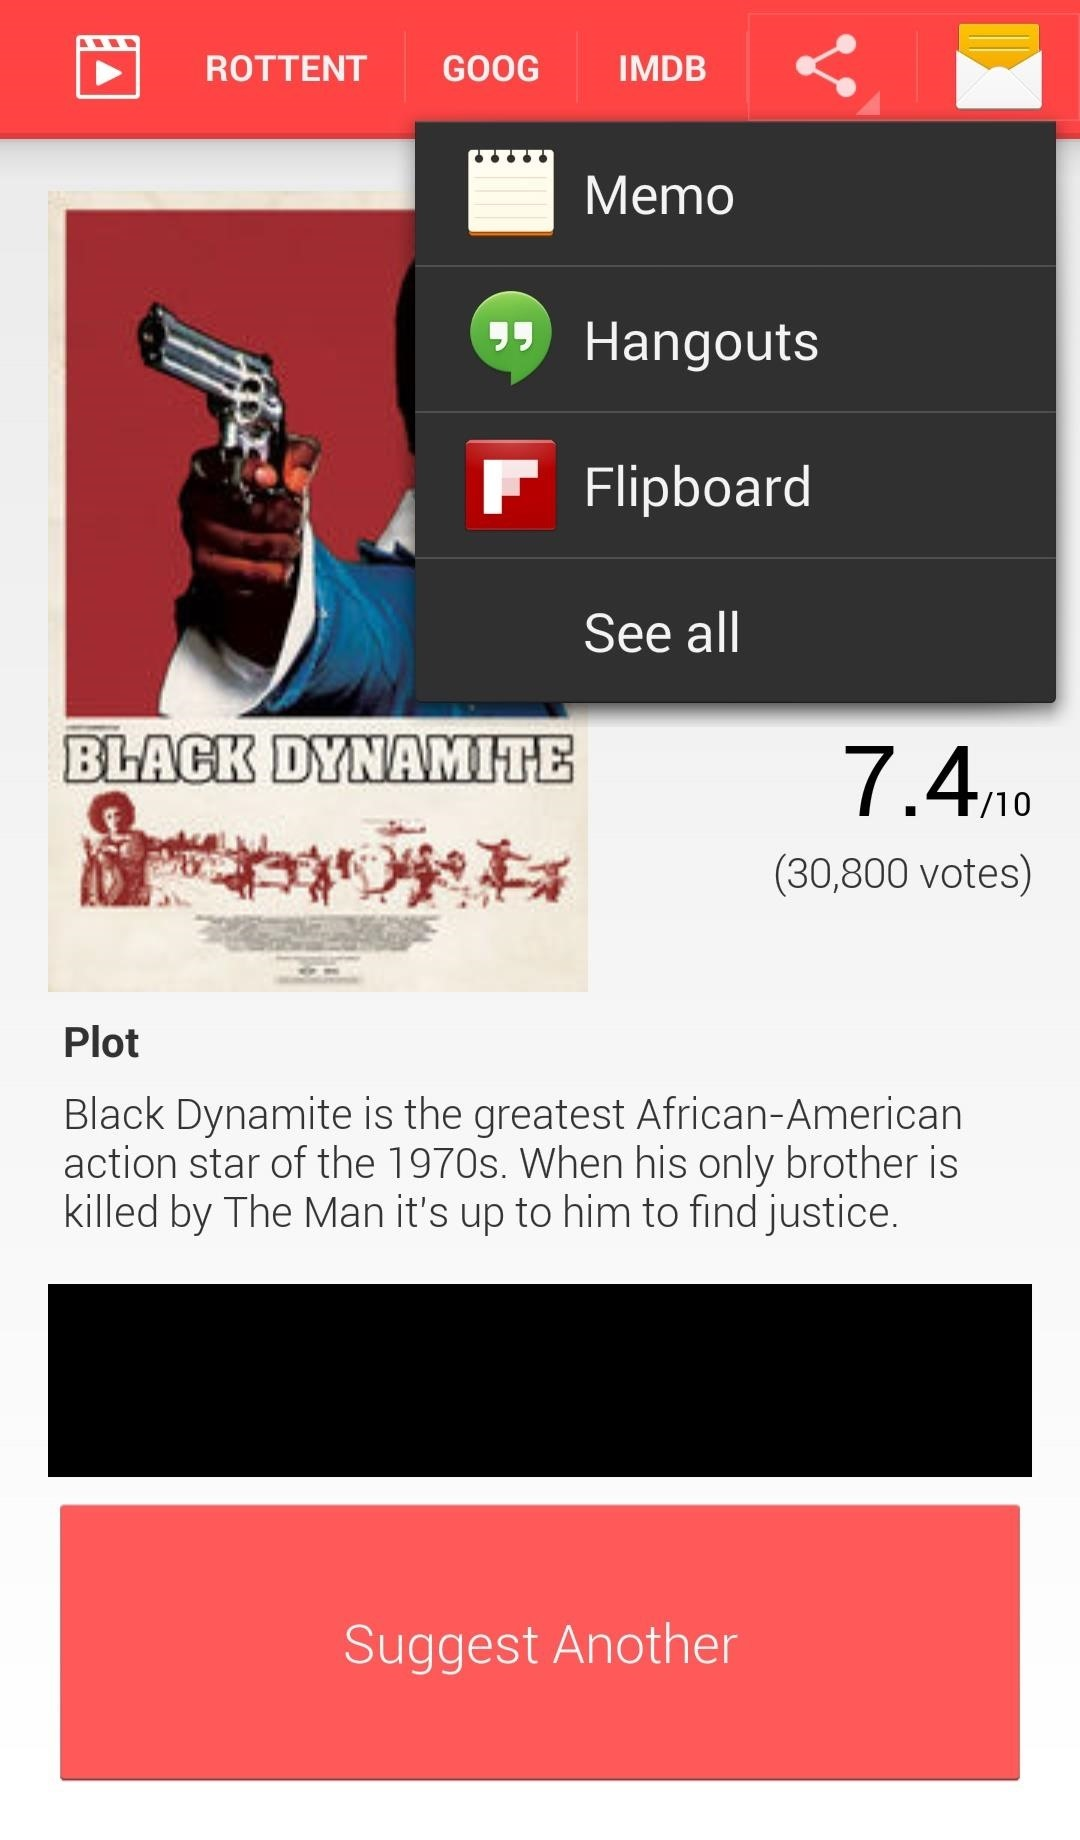 Suggest Movie for Android: A Simple Way to Search for Good Flicks